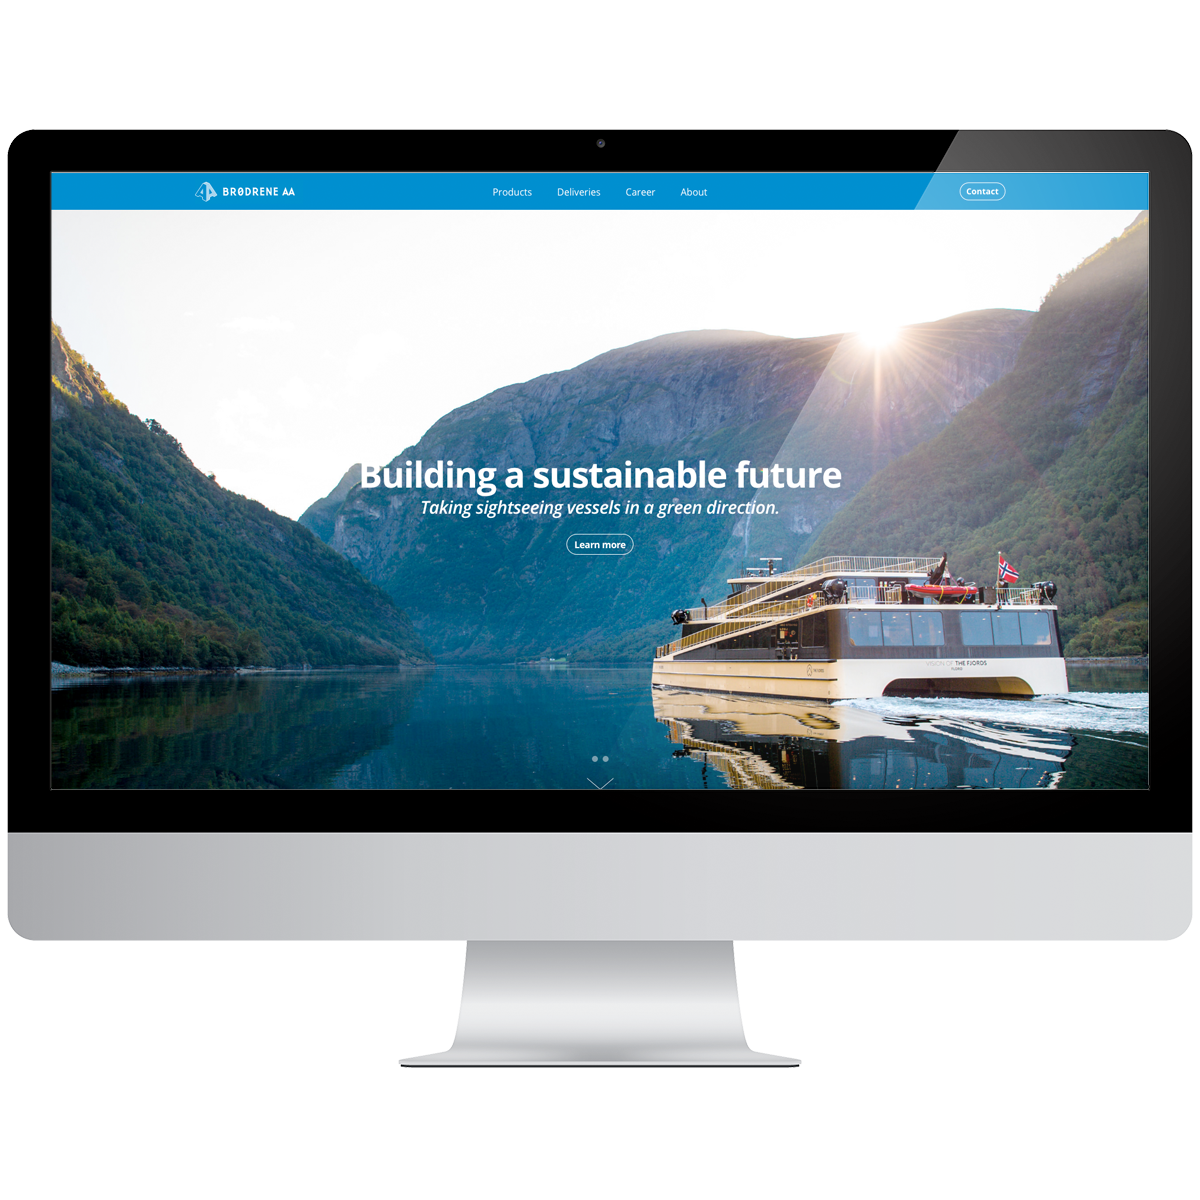 New Website - Our services:- Website design- Squarespace implementation- Squarespace Developer Mode- Custom HTML, CSS, and Javascript- Custom boats moduleIn January 2018, we launched a new website for Brødrene Aa. This is a second generation website with a Squarespace platform. The website has both a modern design and simplified content.